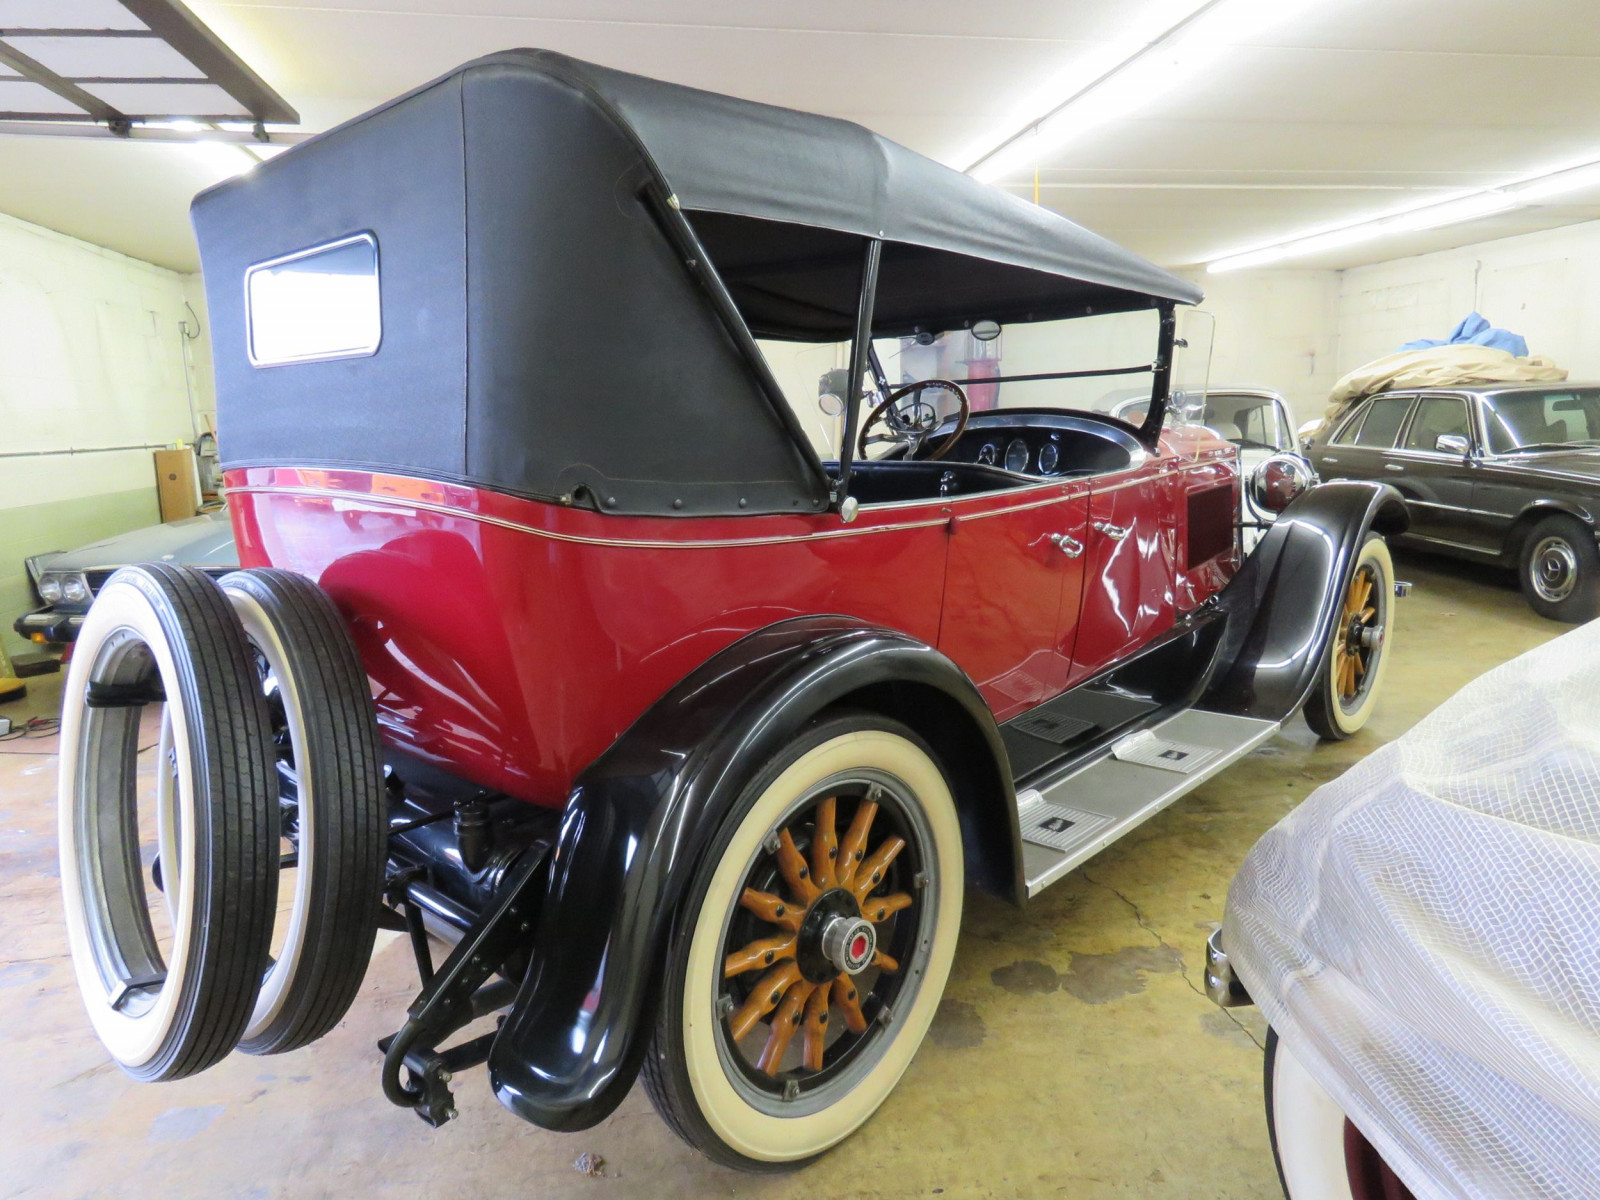 1922 Packard Series 126 Single Six touring Car - Image 6